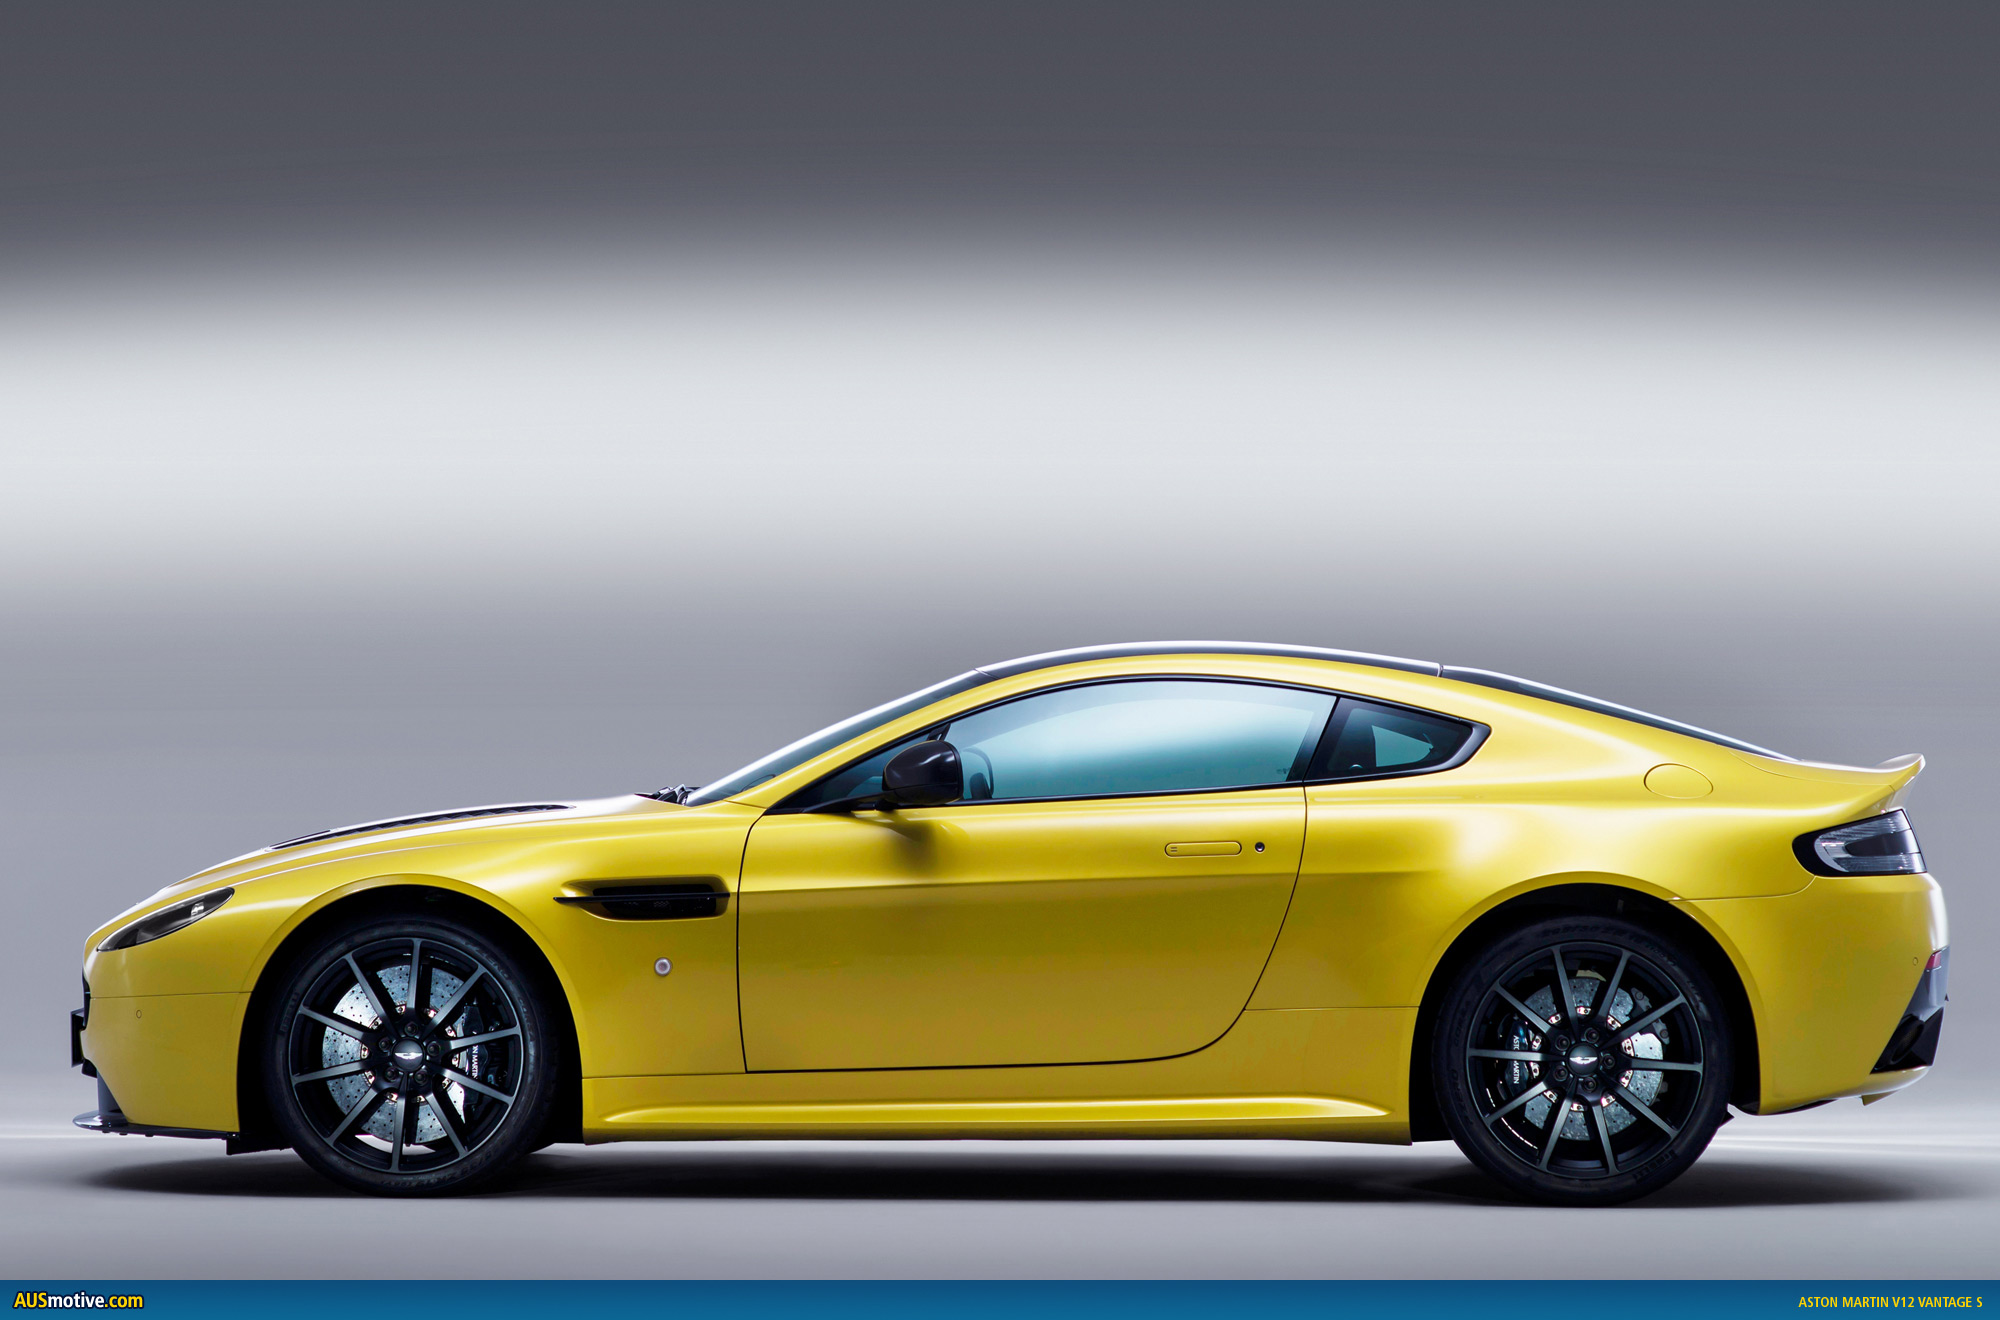 aston martin vantage 2018 side view. Aston Martin V12 Vantage S 2018 Side View